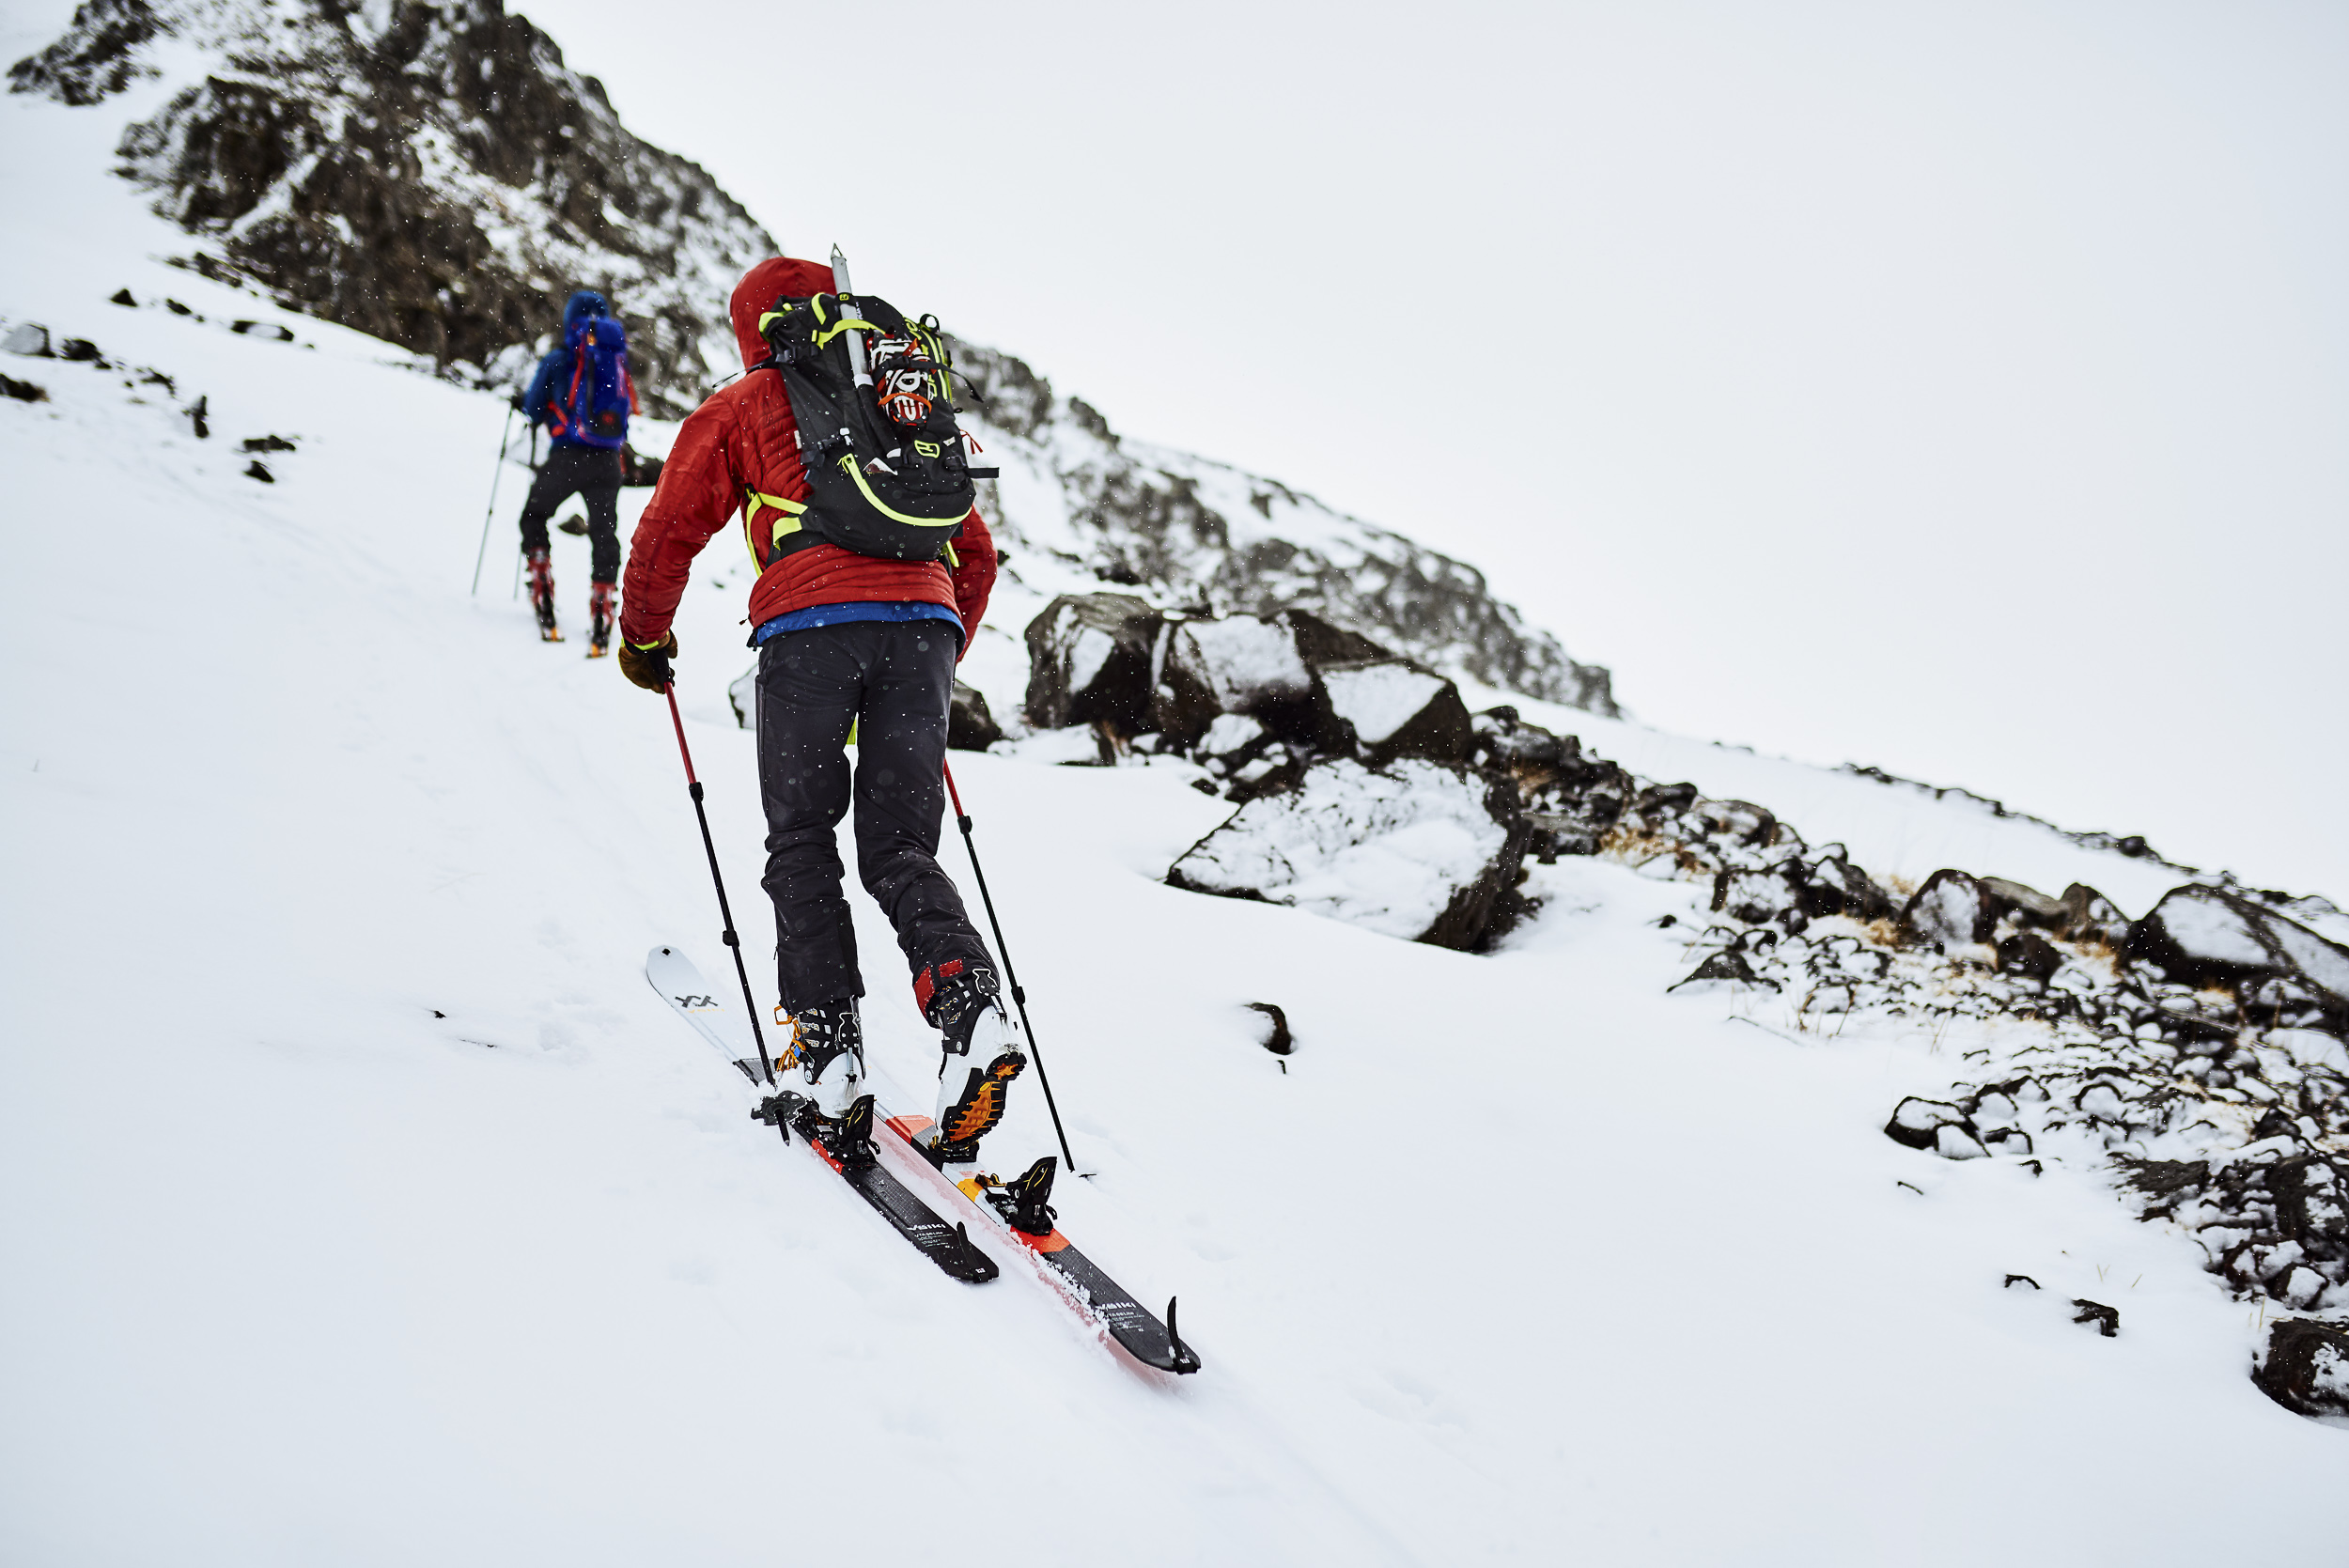 Iceland-Backcountry-Skiing-1651